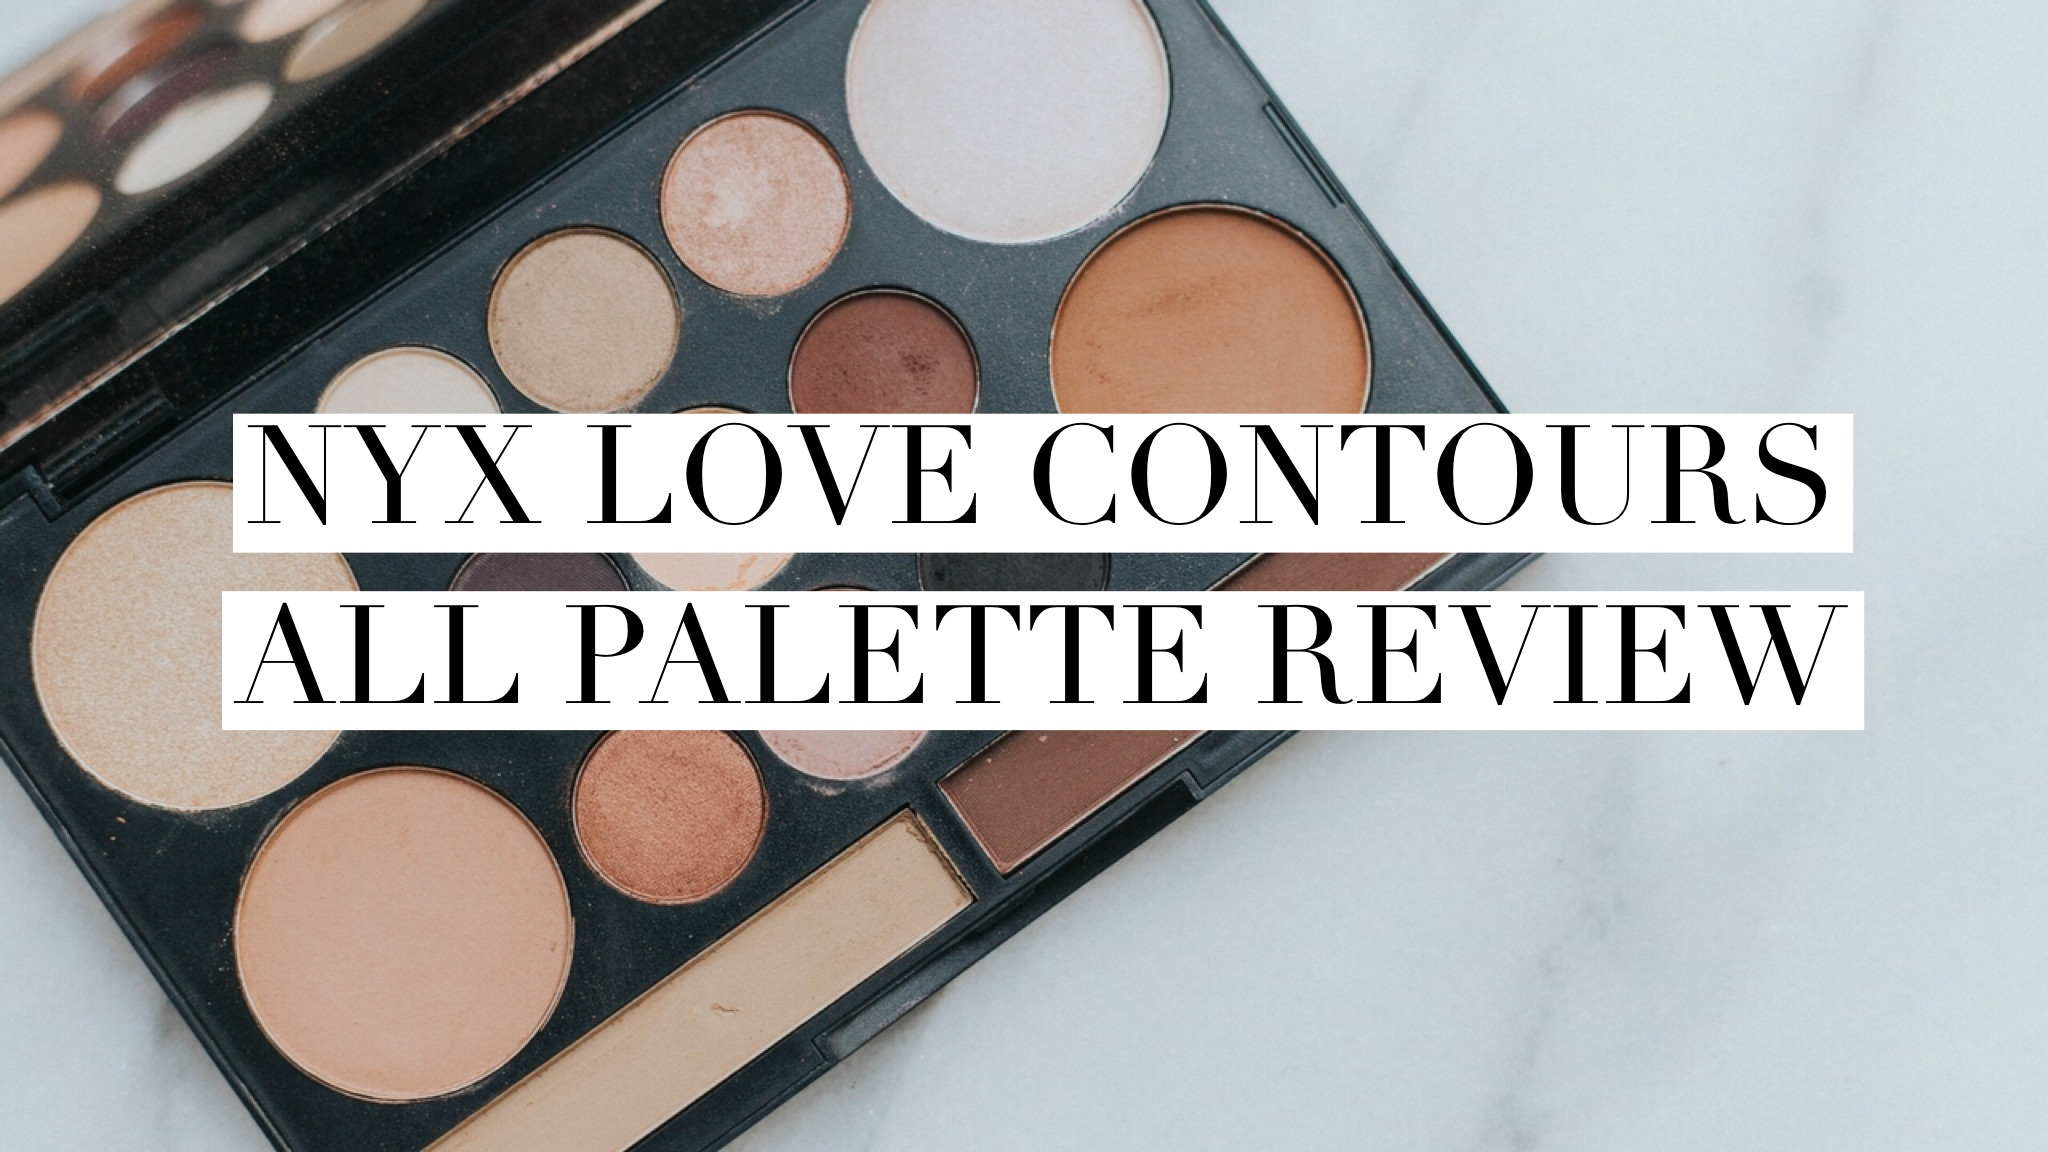 NYX Love Contours All Palette Review | Twinspiration